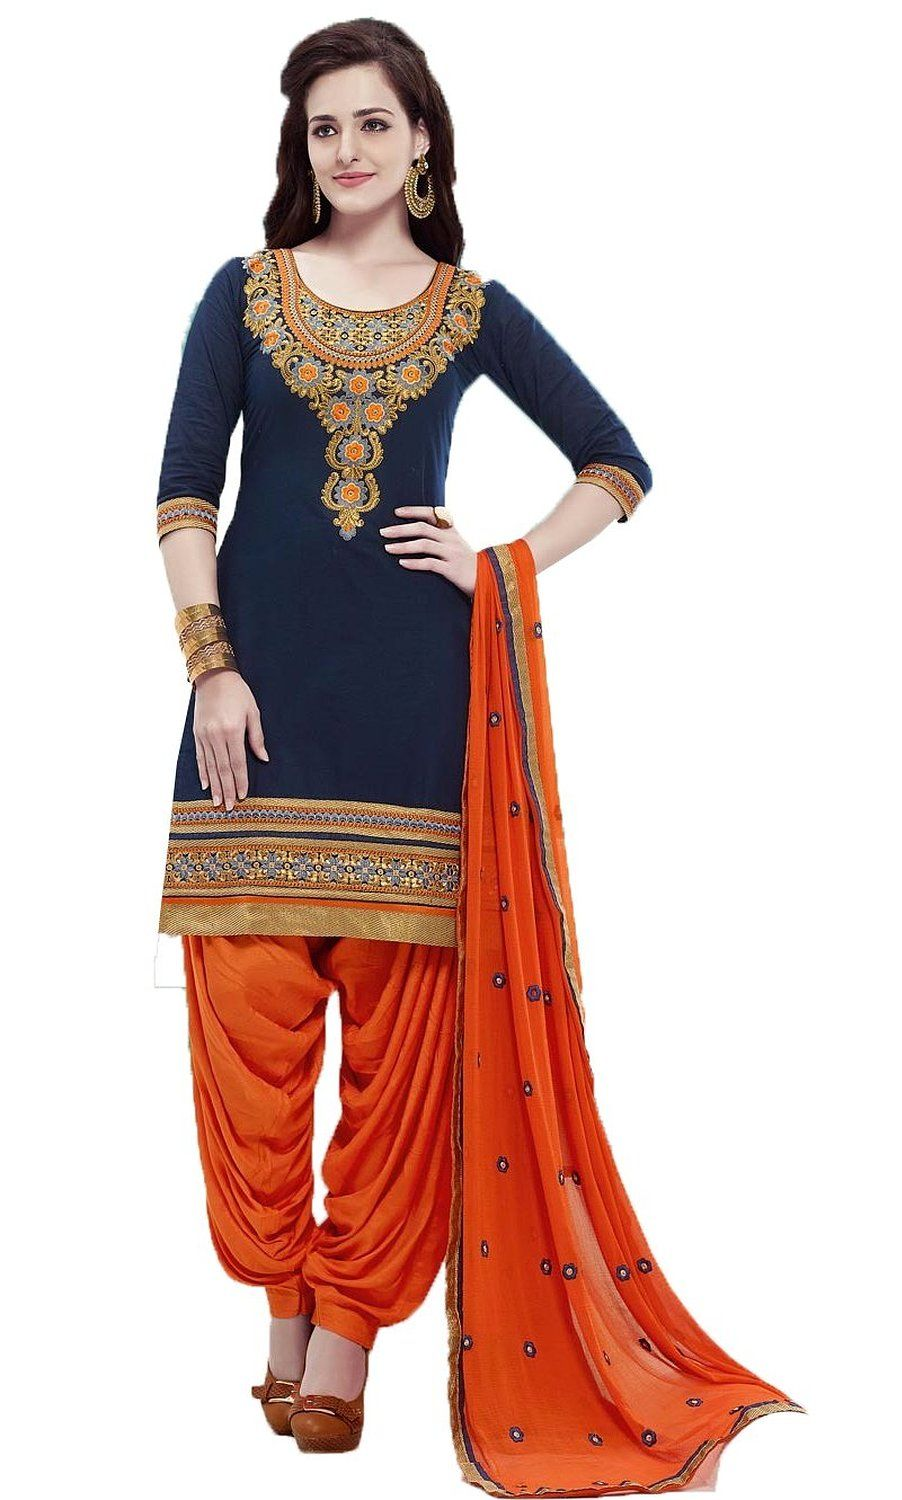 Chakudee By Blue And Orange Dress Amazon In Clothing Accessories